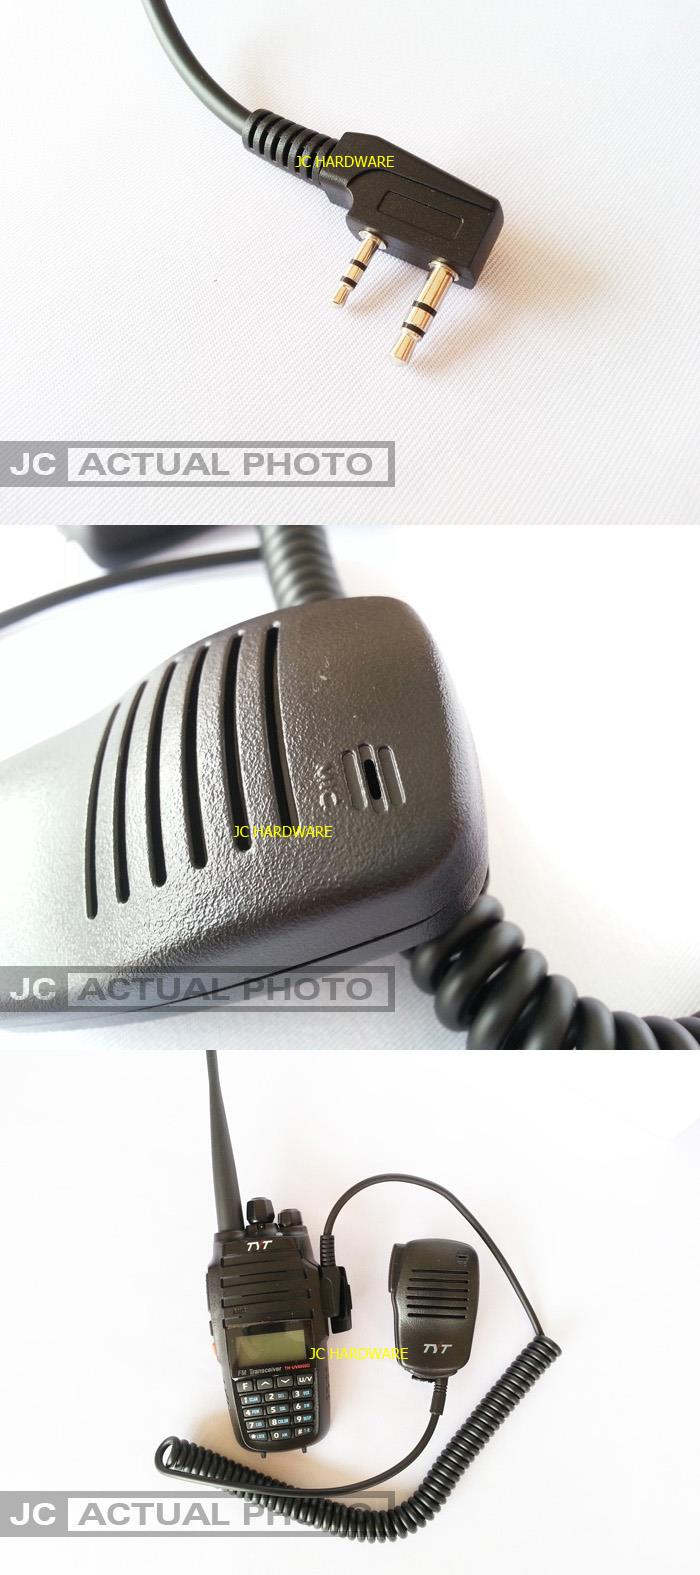 dmr drone with Tyt Walkie Talkie Handheld Ptt Mic Speaker Microphone Handsfree Jchardware 185298496 2017 11 Sale P on Army Now Says No Ban On Rifle Magazines as well Id 458775 moreover 1100 6448710 as well Tyt Walkie Talkie Handheld Ptt Mic Speaker Microphone Handsfree Jchardware 185298496 2017 11 Sale P besides I0000f.